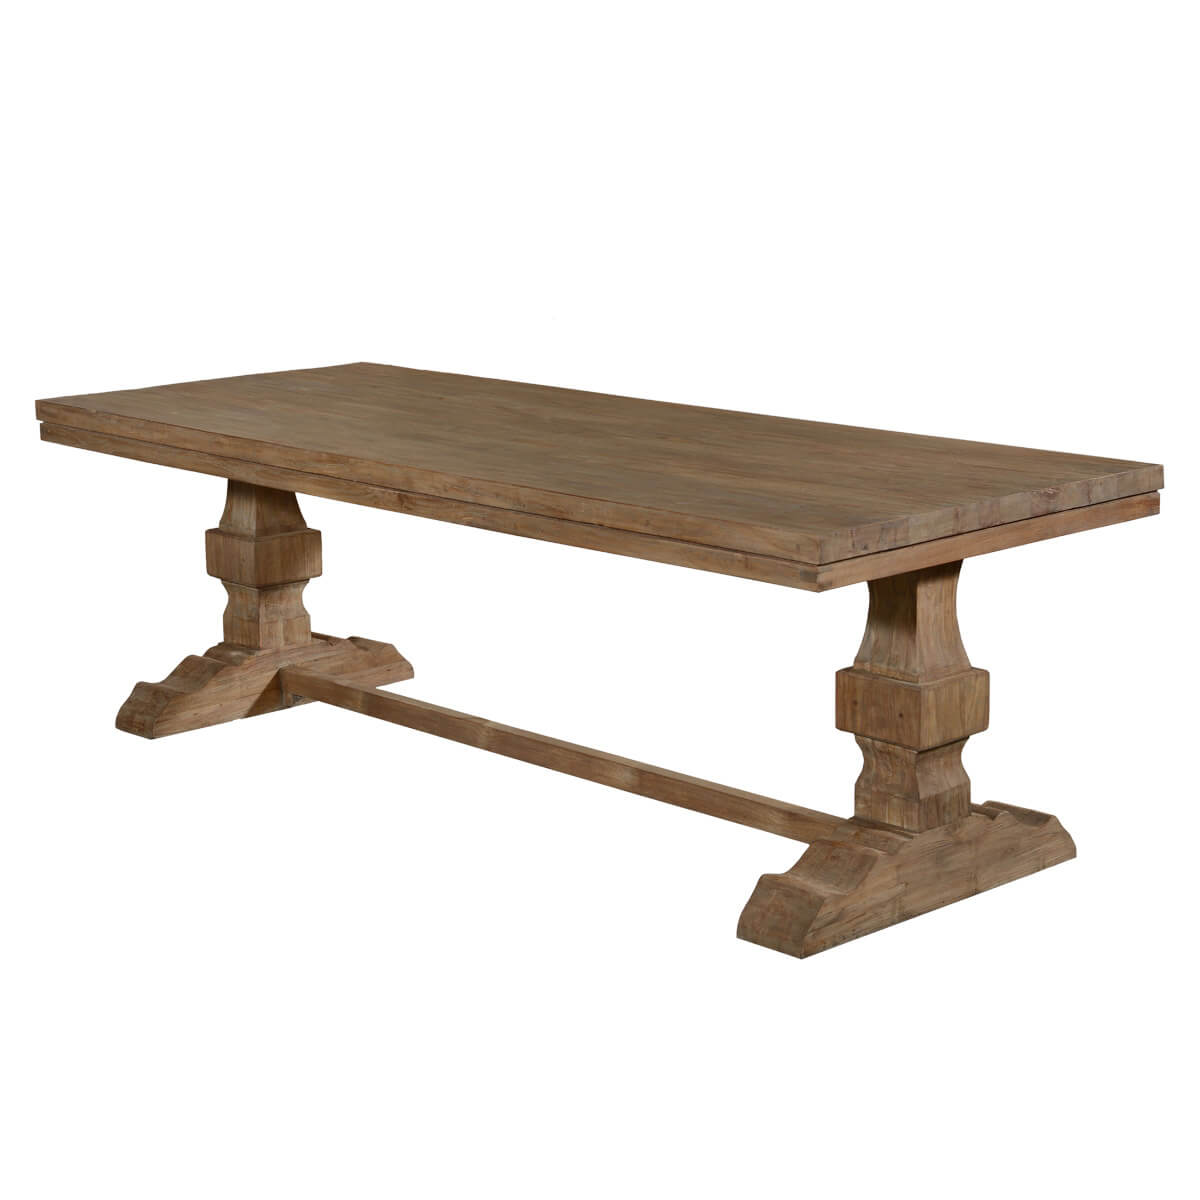 California Rustic Recycled Teak Trestle Base Farmhouse Dining Table